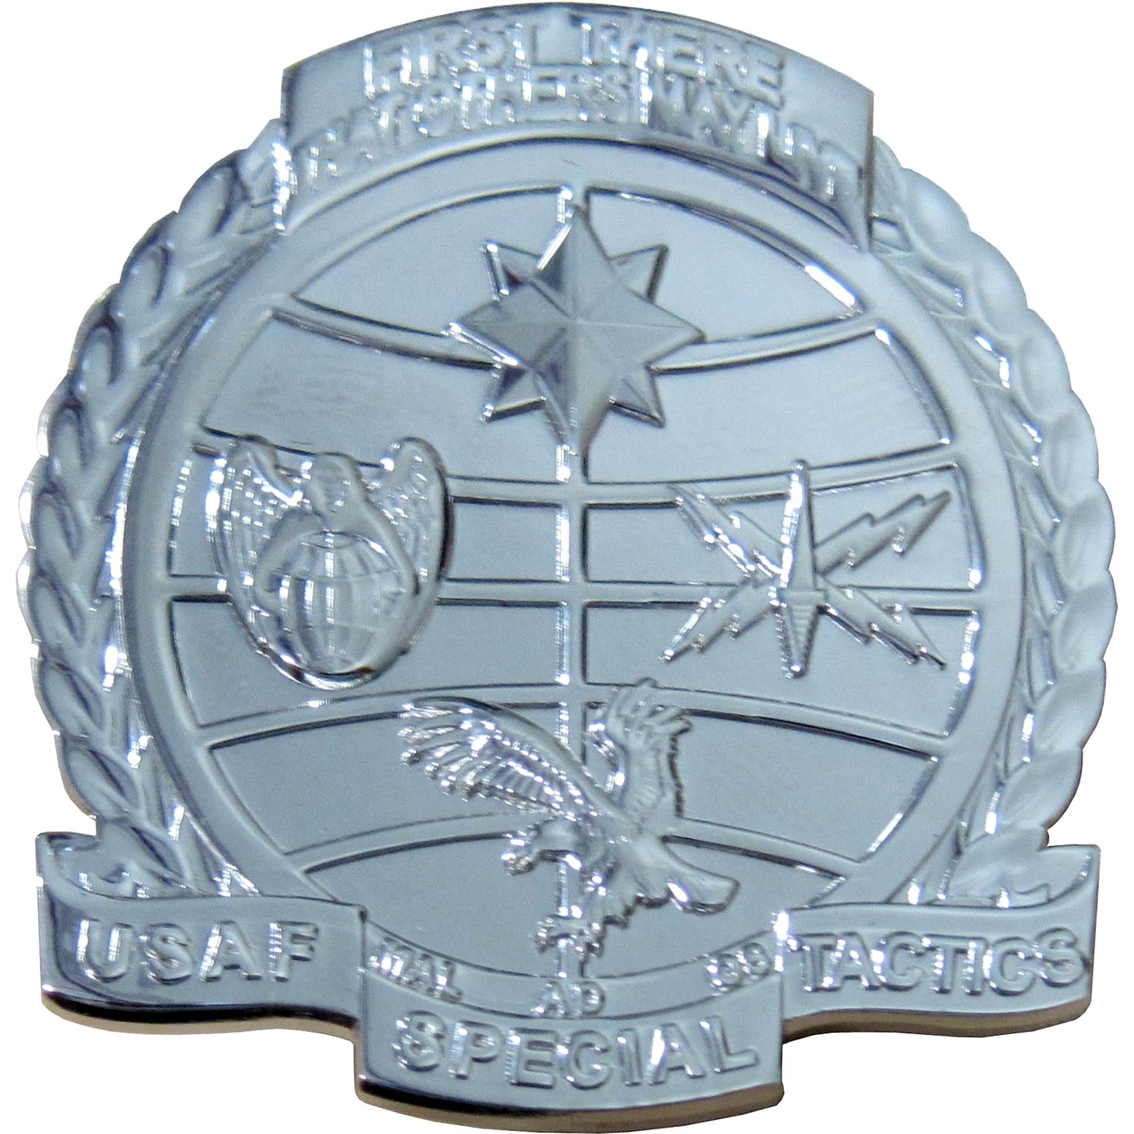 Air Force Crest Beret Special Tactics Officer | Air Force